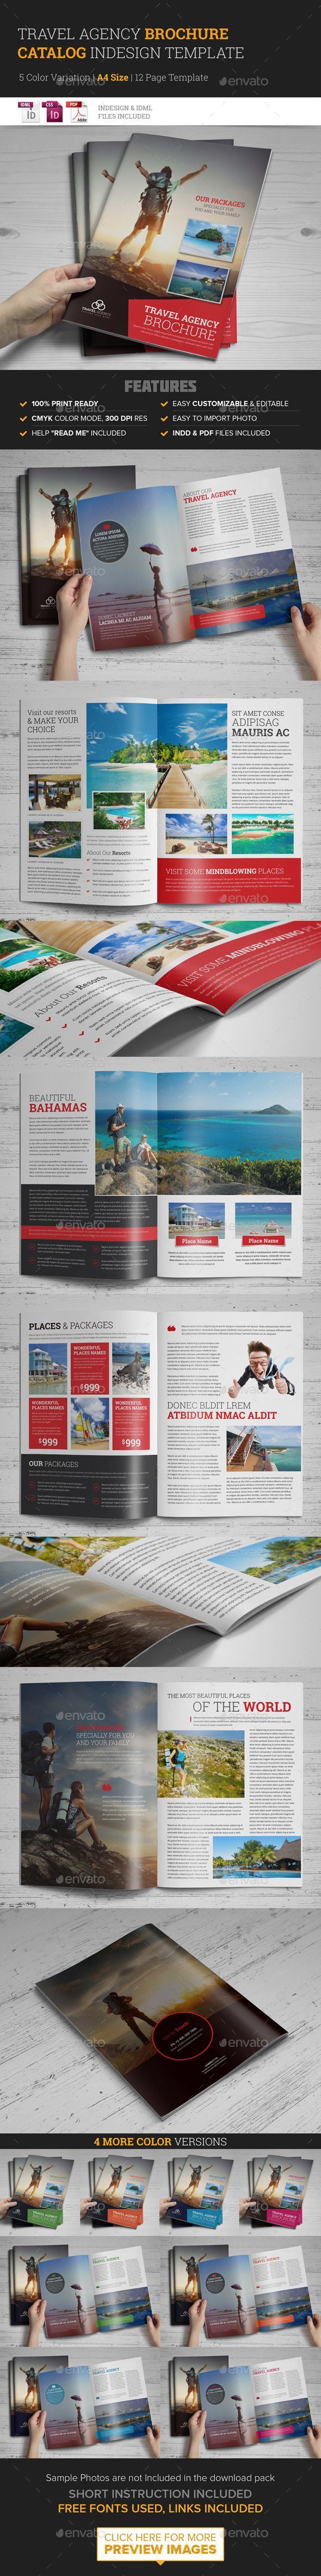 Travel Agency Brochure Catalog InDesign Template 2 | Diseño ...